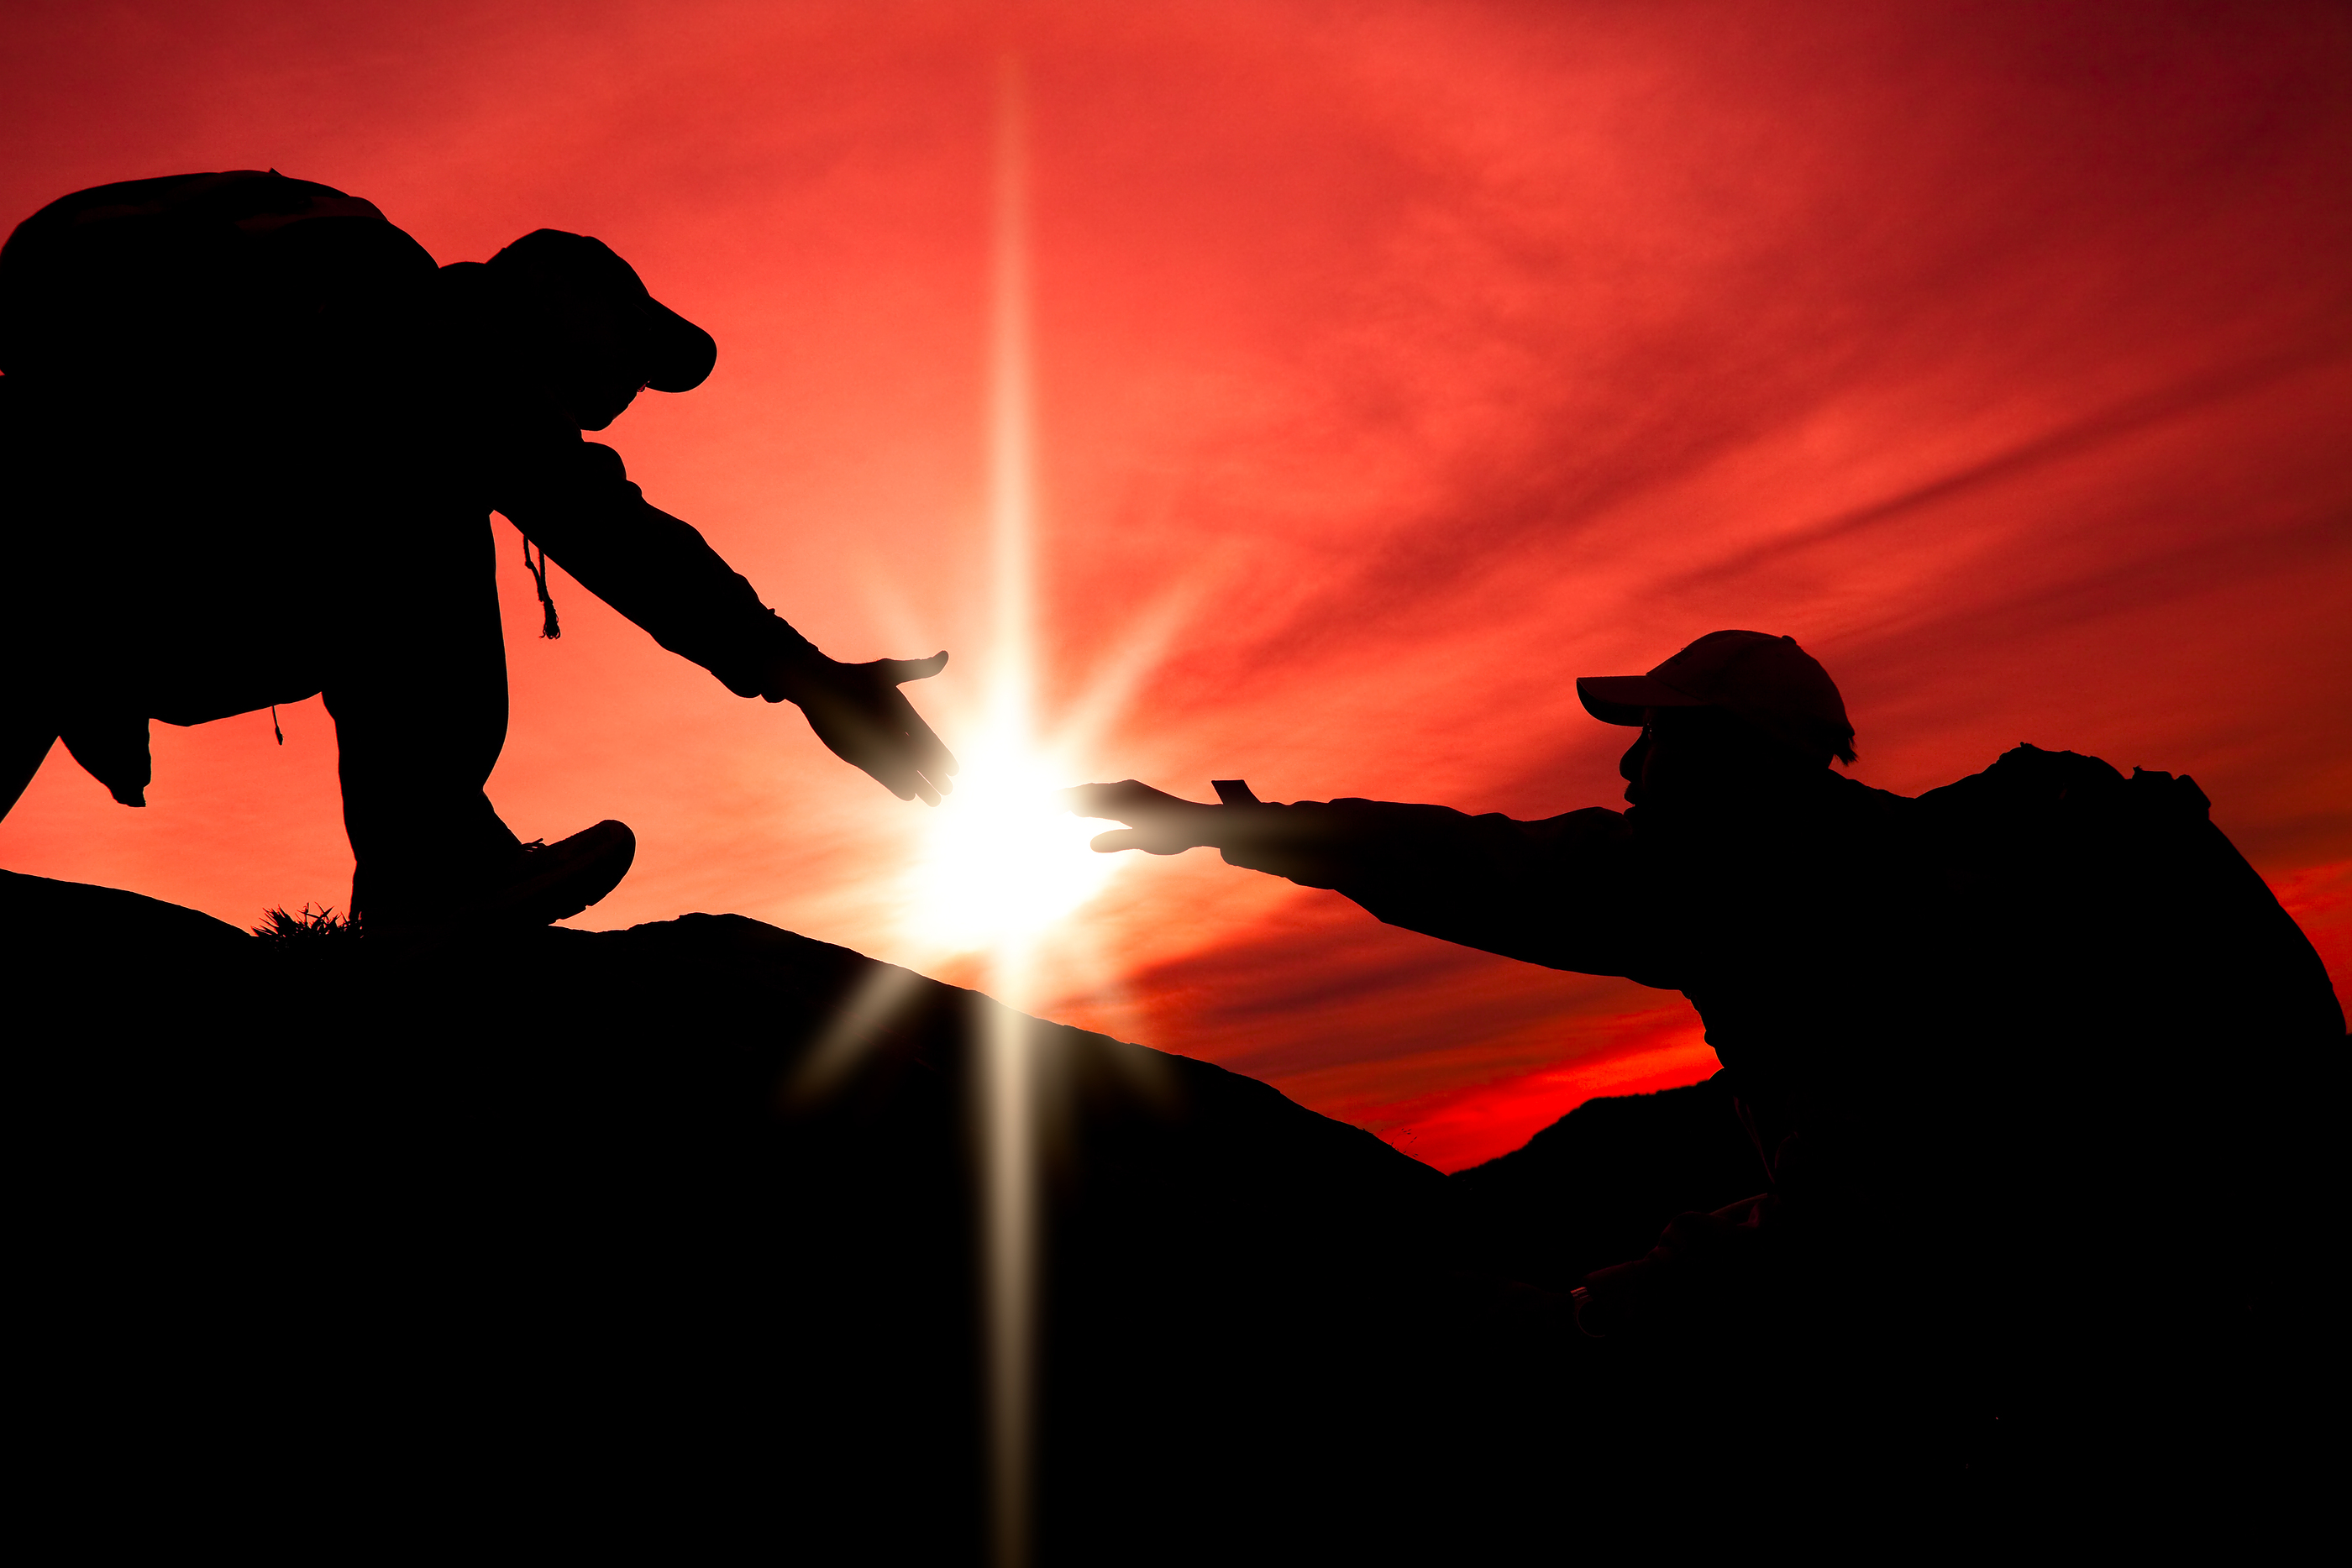 Silhouette of helping hand between two climber.jpg